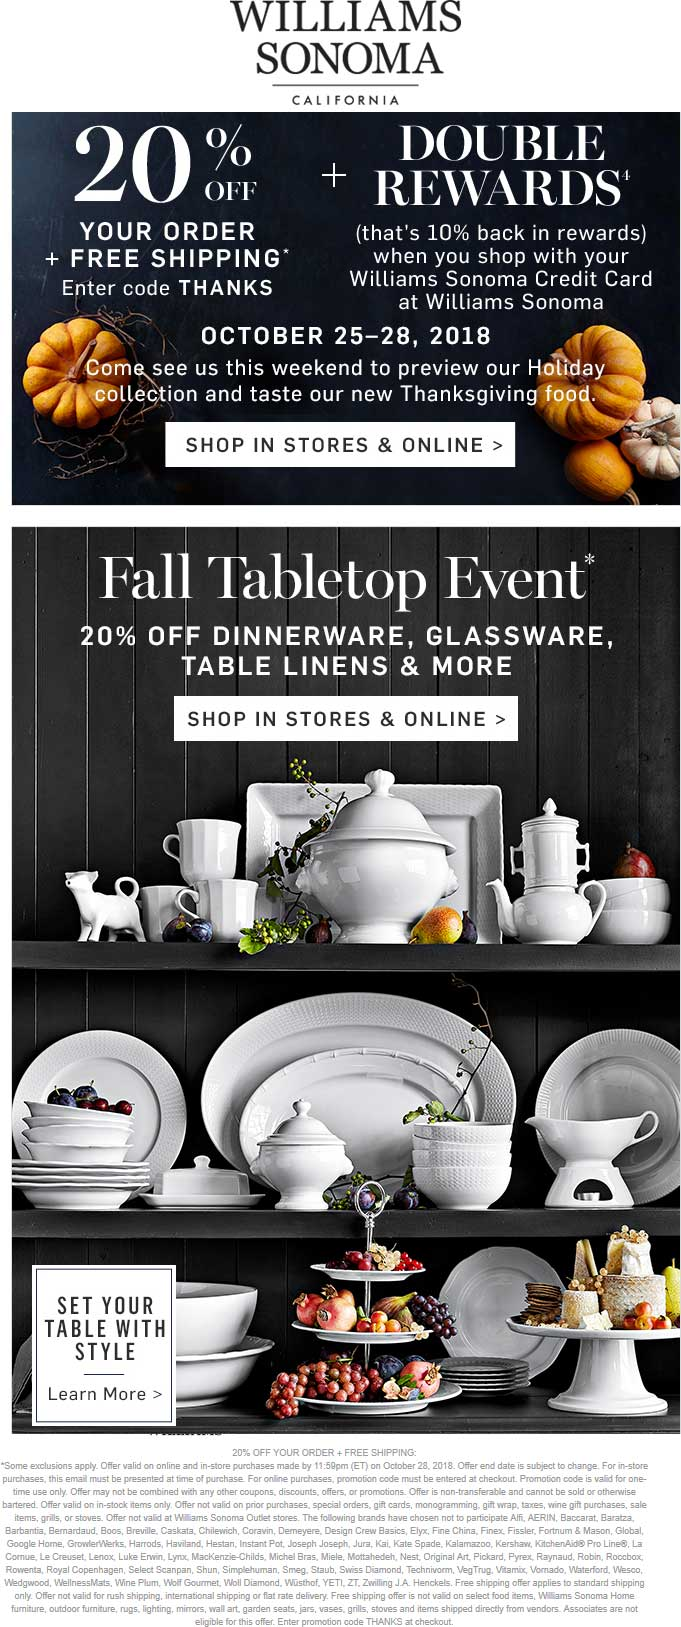 WilliamsSonoma.com Promo Coupon 20% off at Williams Sonoma, or online via promo code THANKS